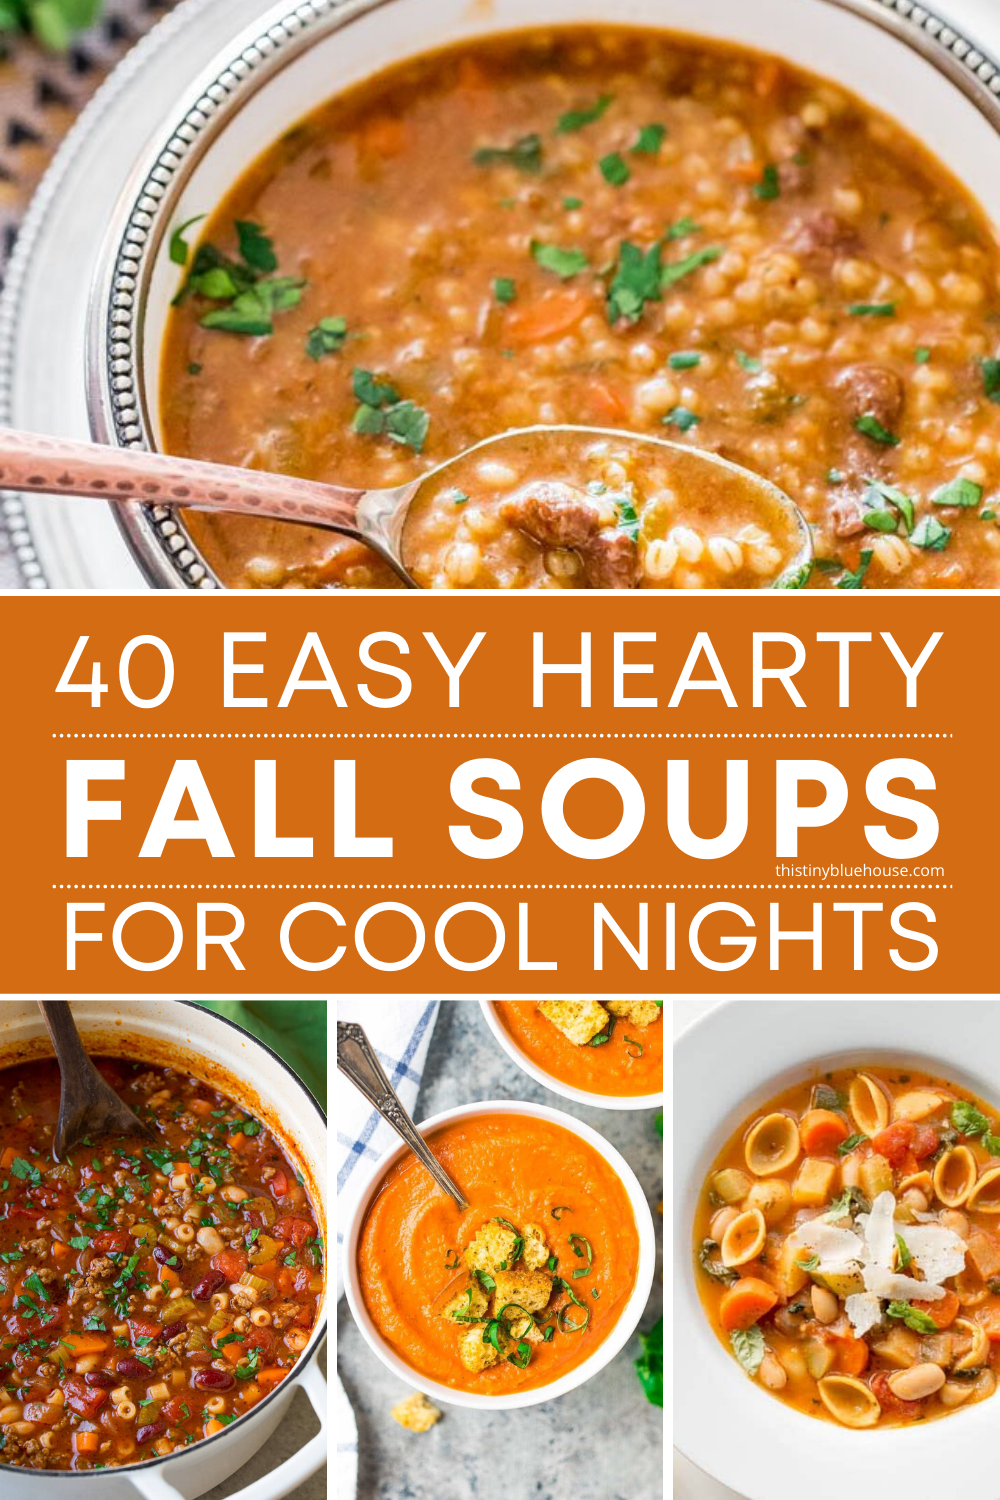 40 Must Try Delicious Easy Hearty Fall Soups In 2020 Fall Soups Recipes Soup Recipes